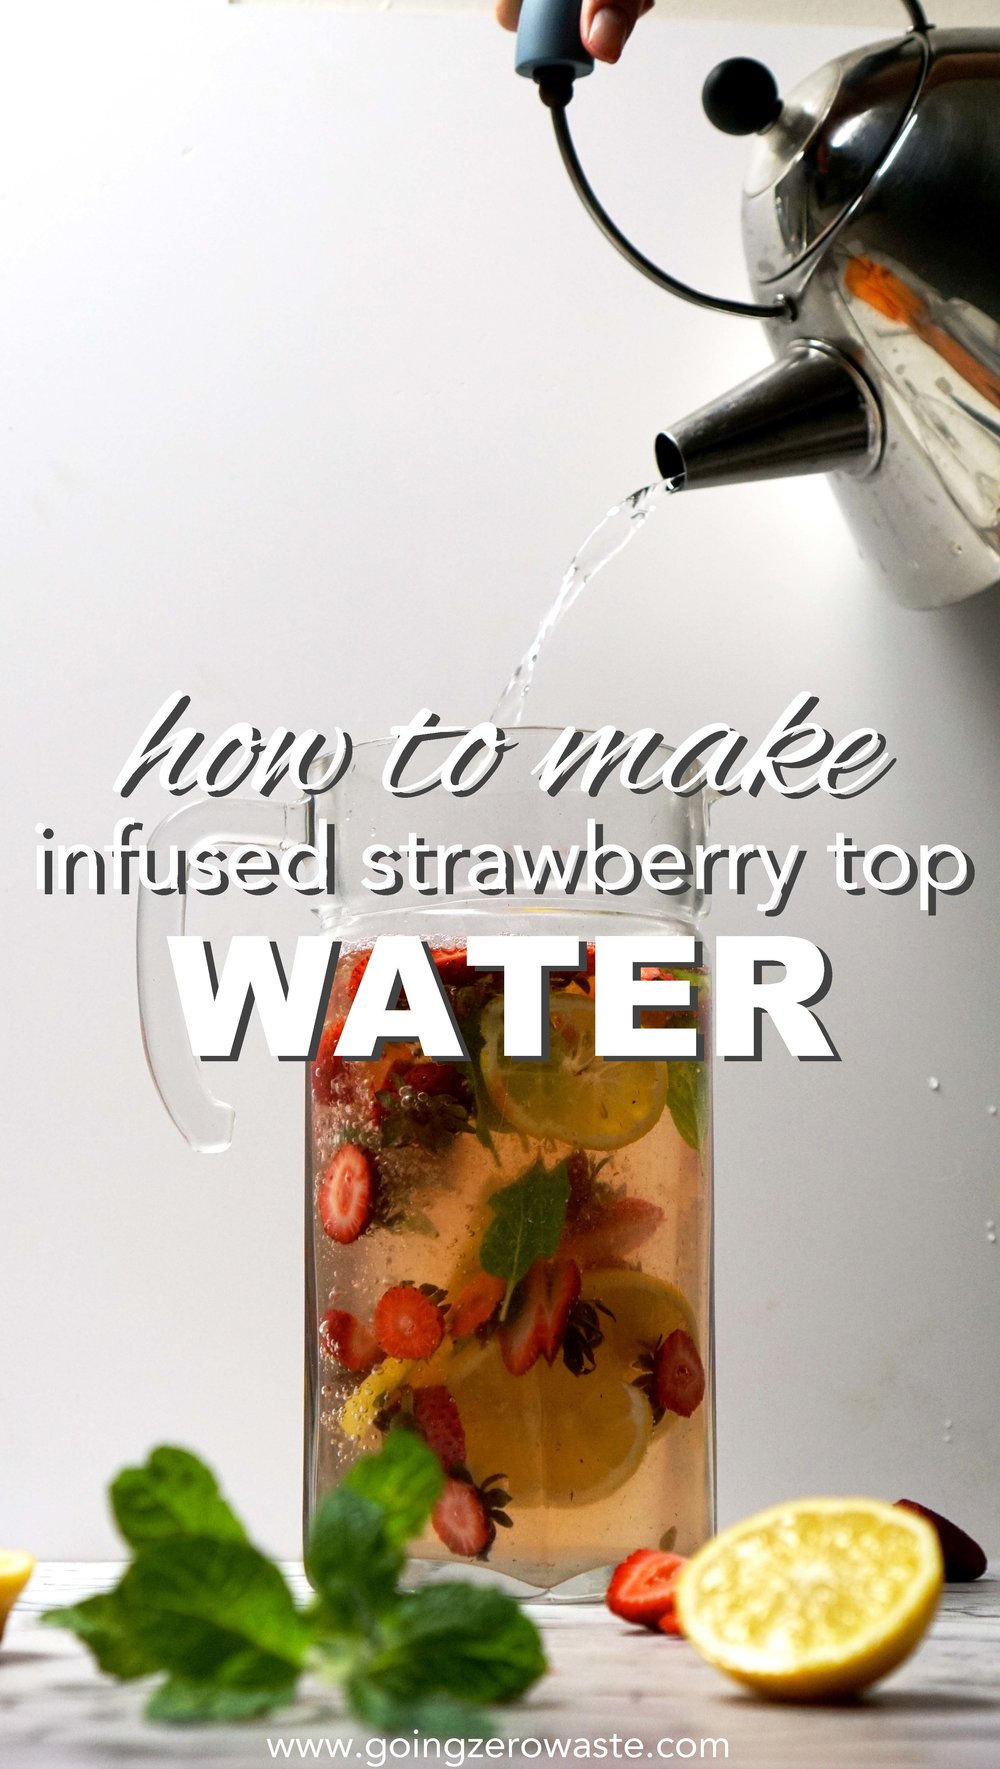 Infused strawberry top water // a recipe to prevent food waste from www.goingzerowaste.com